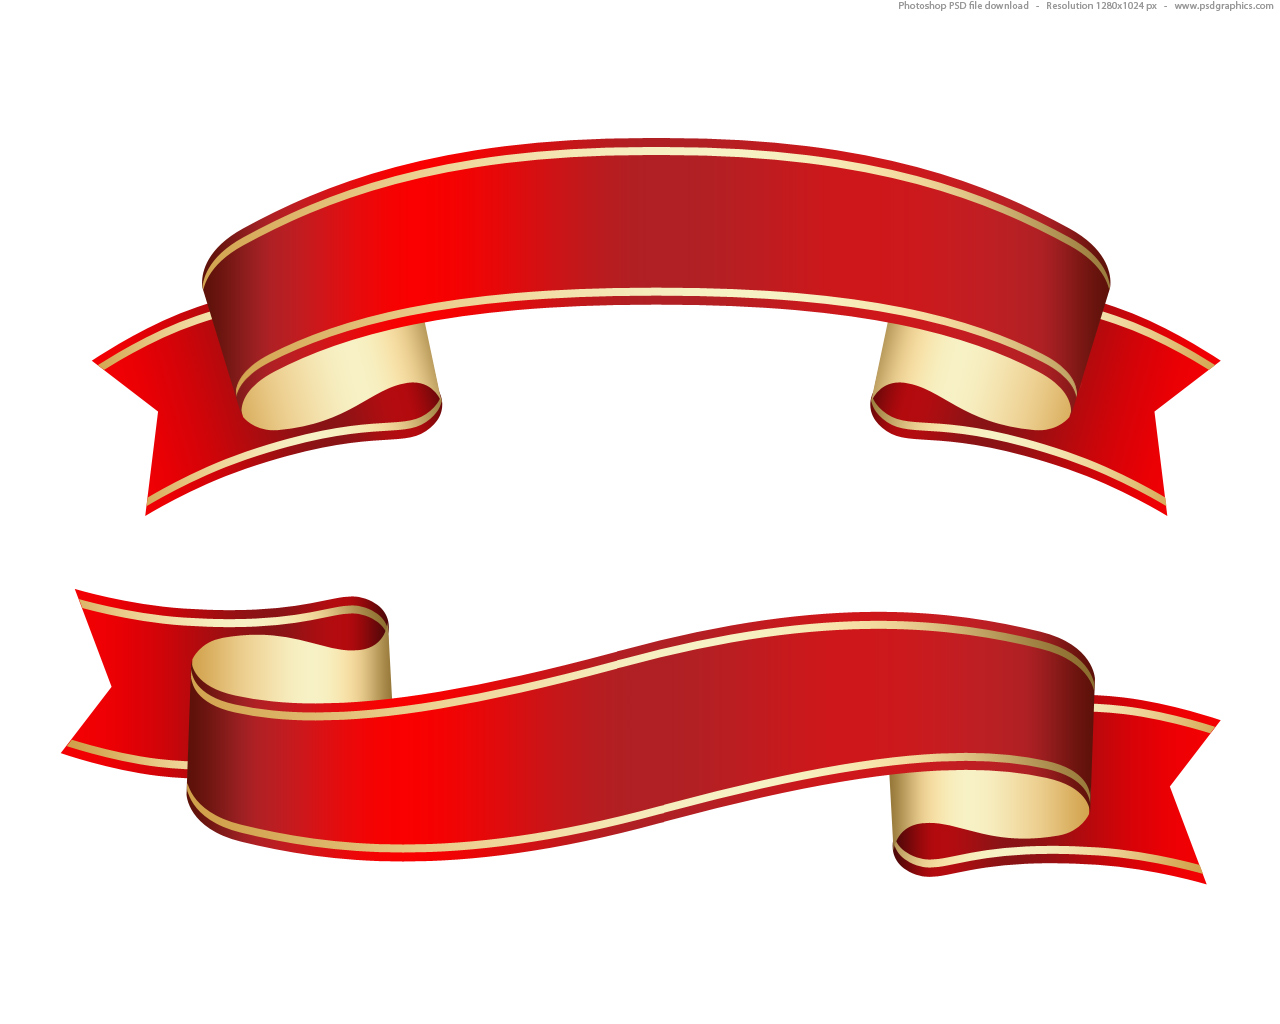 1280x1024 Free Psd Clipart Full Size Jpg Preview Curled Red Ribbon